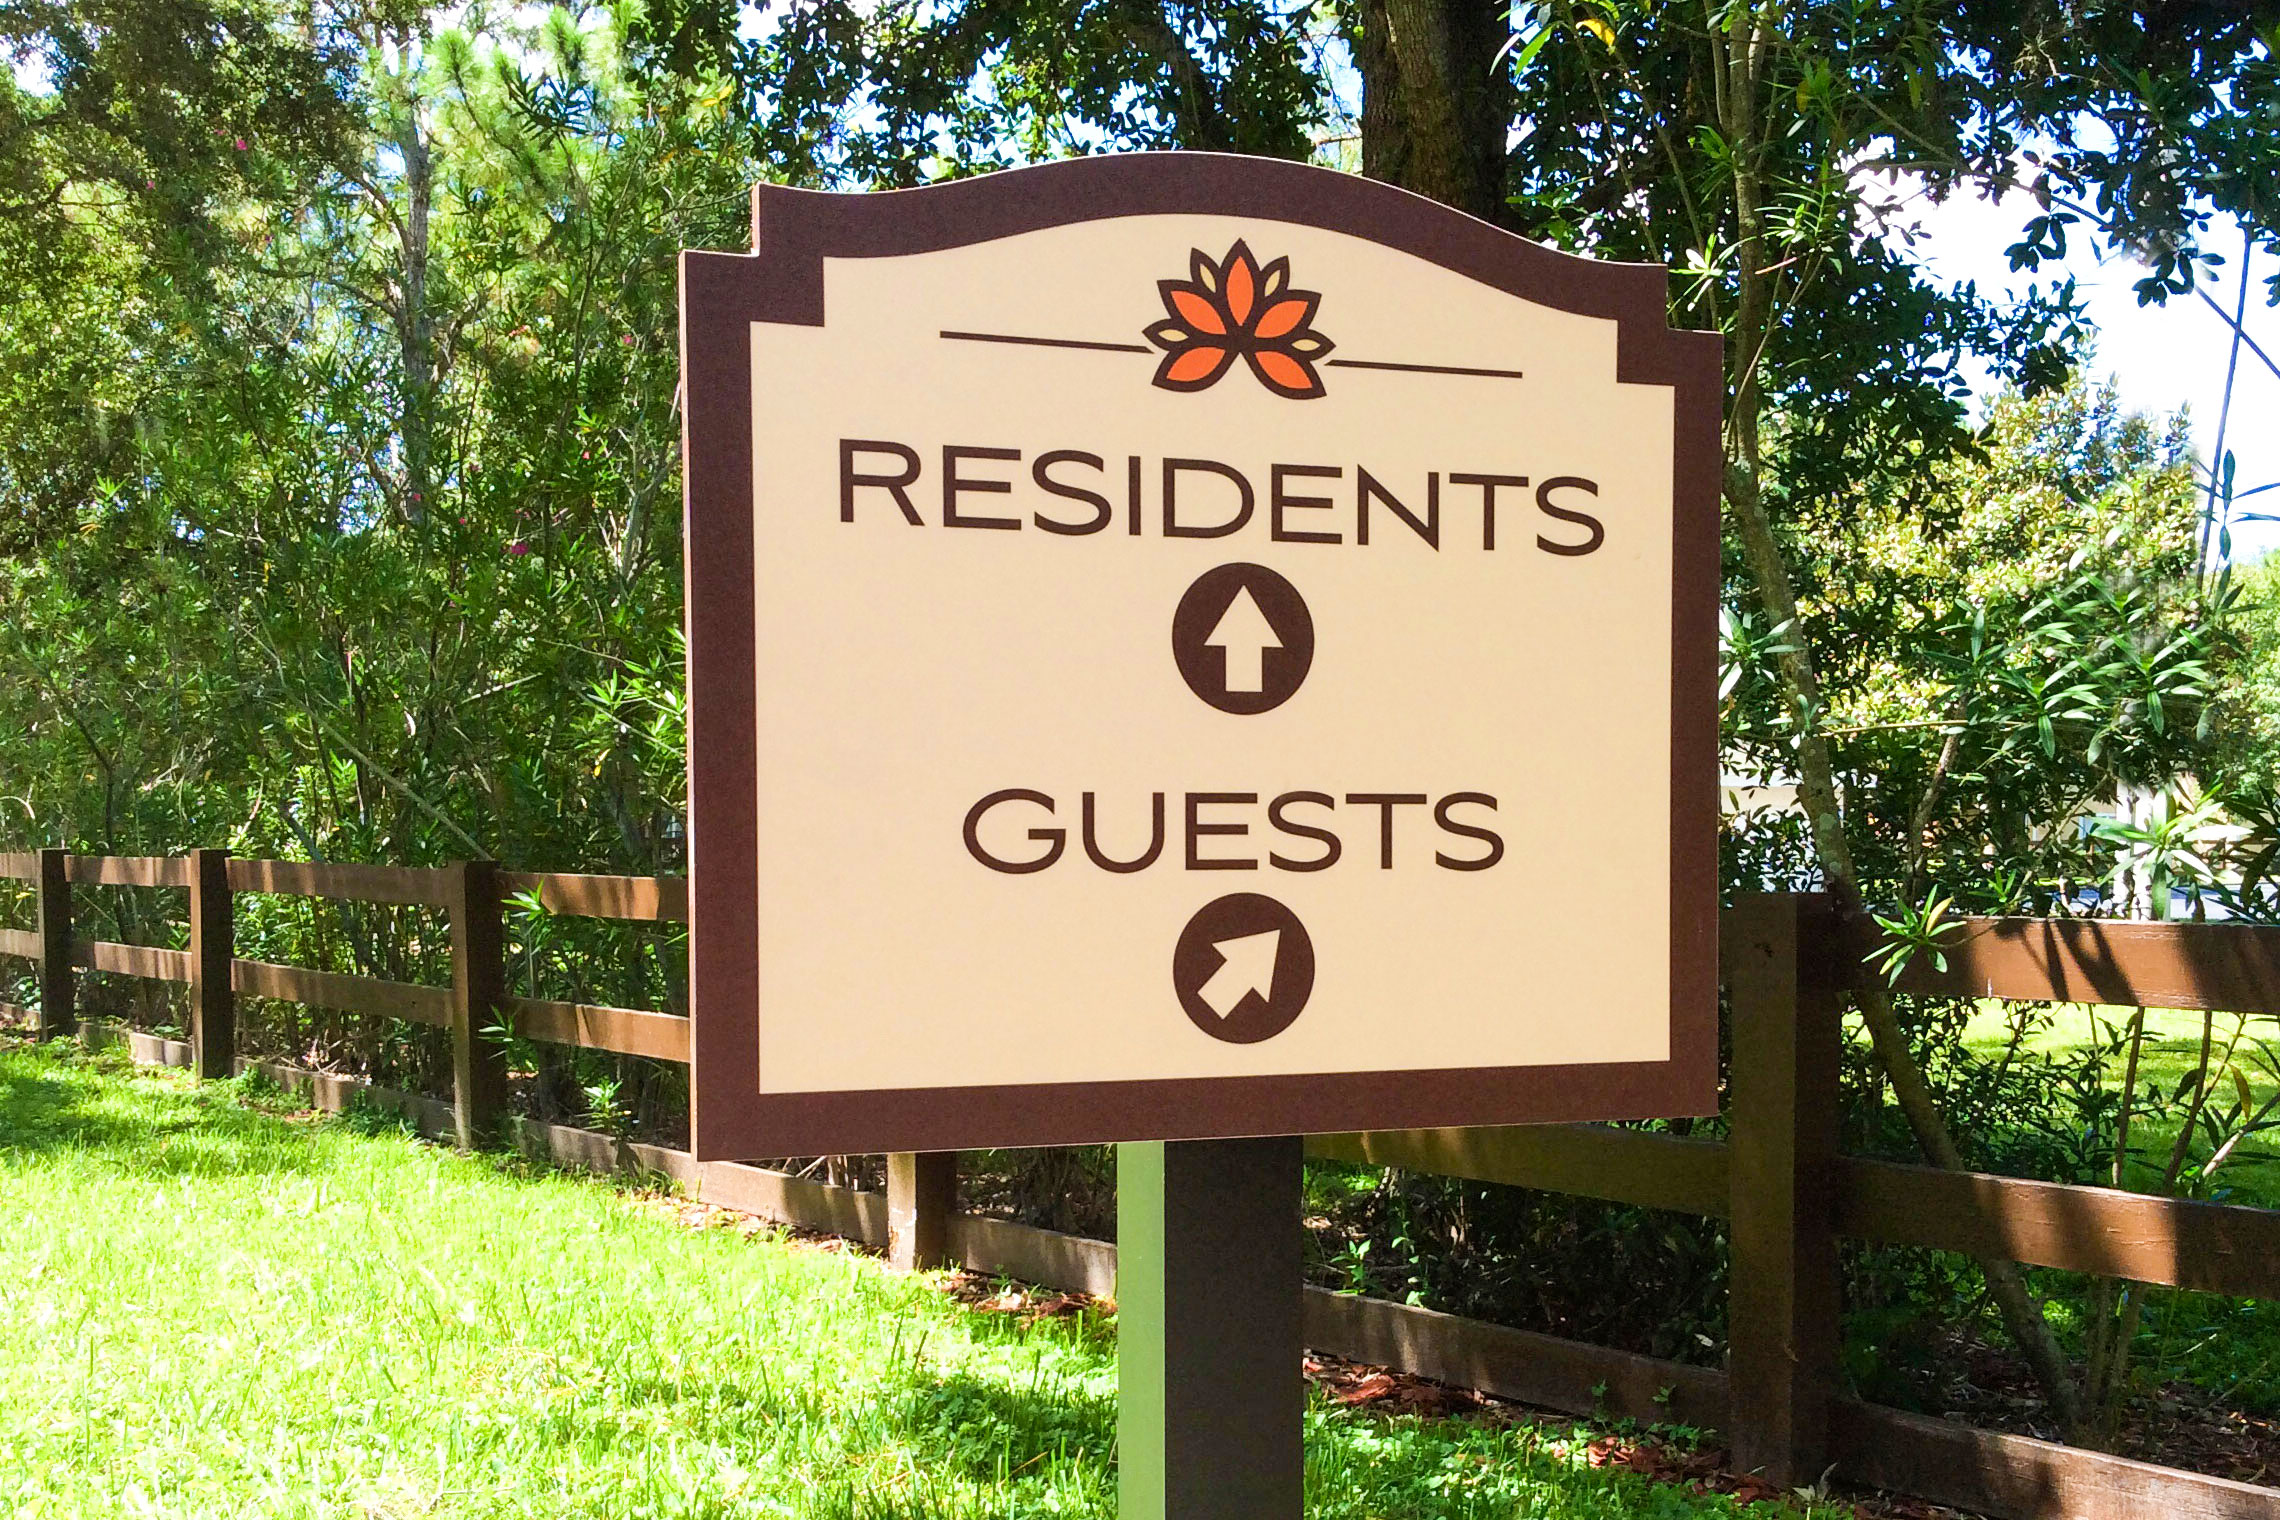 Retreat at Crosstown Apartment Homes Residents and Guests Parking Directional on Post